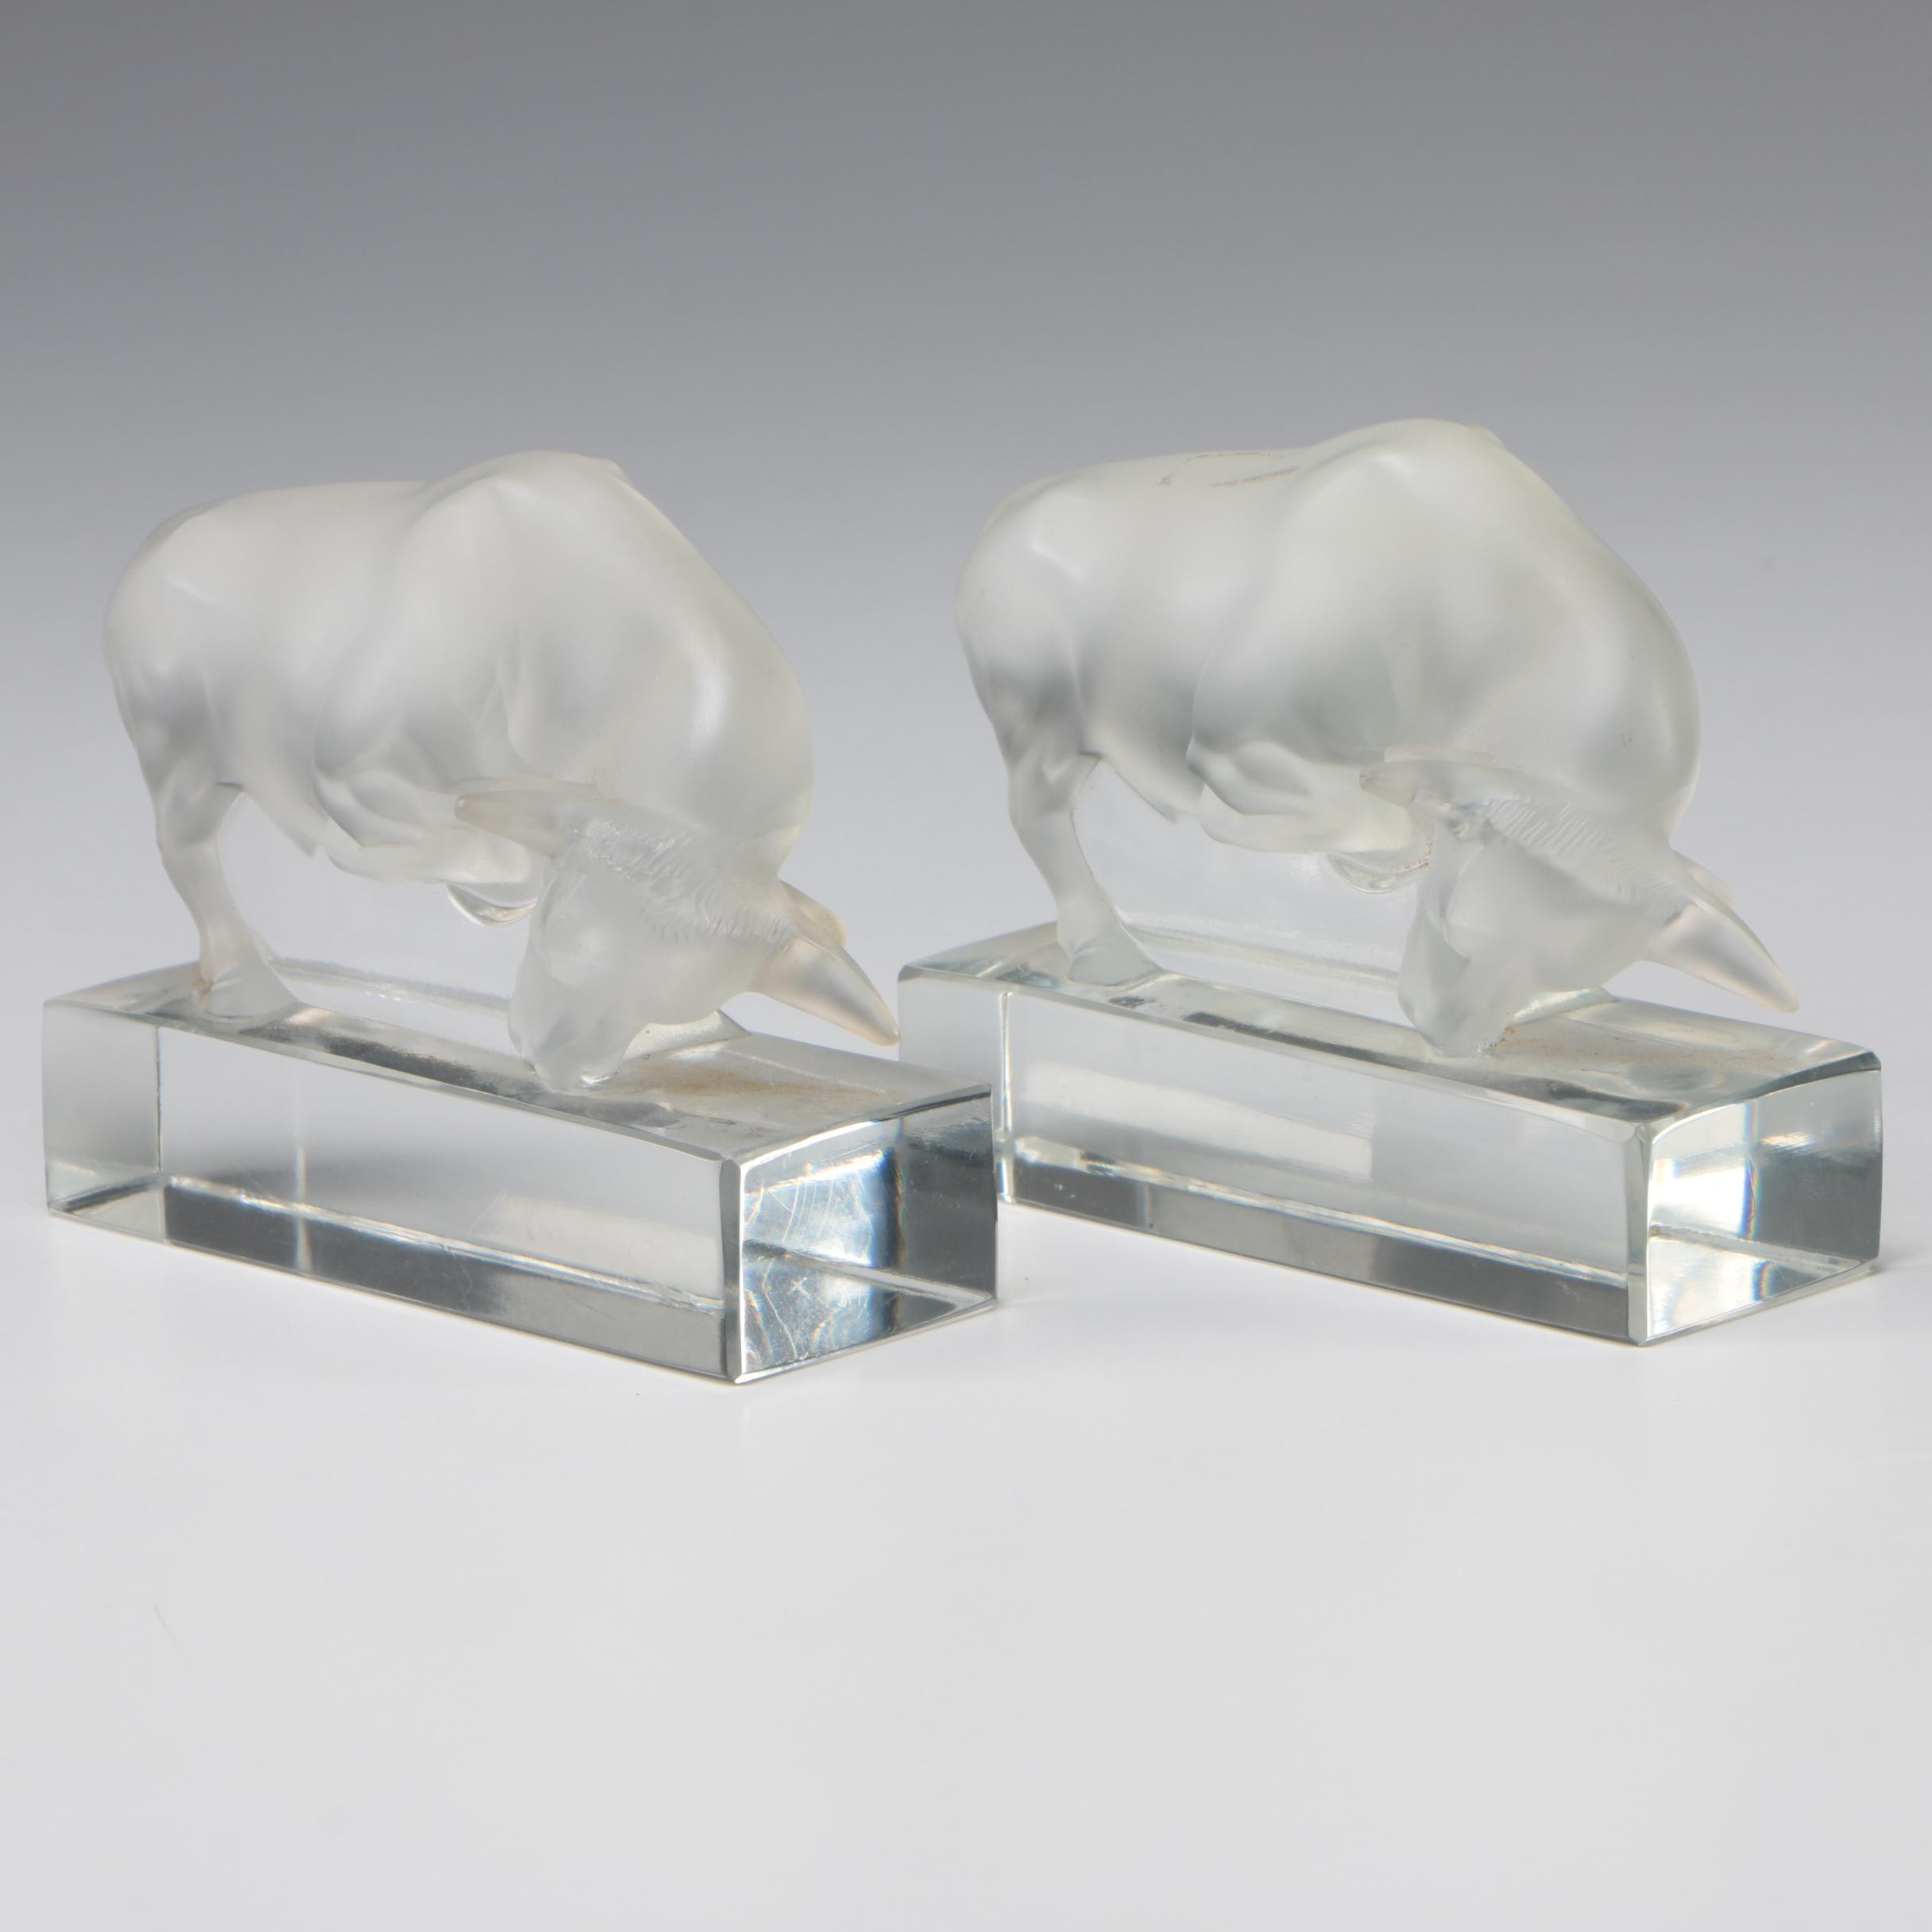 Pair of Lalique Frosted Crystal Charging Bull Figurines